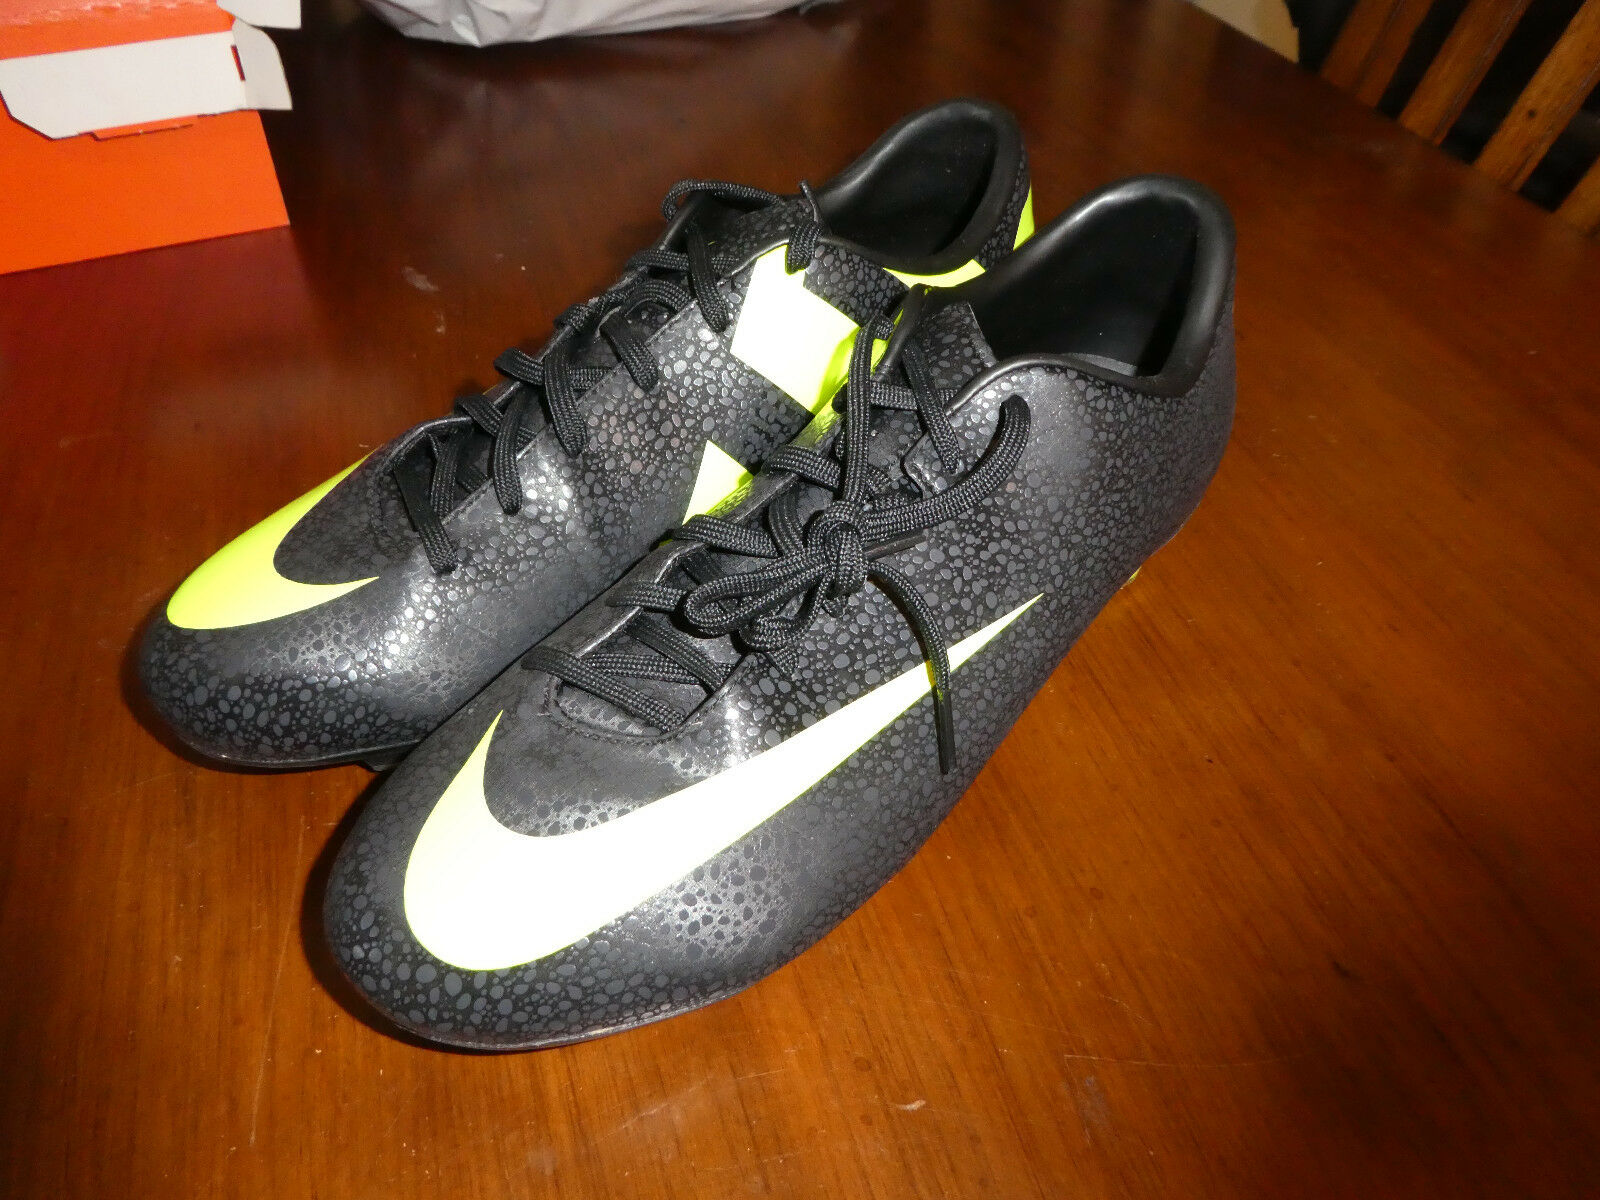 Nike Mercurial Miracle II FG Soccer Cleats new shoes 442047 070 Renaldo